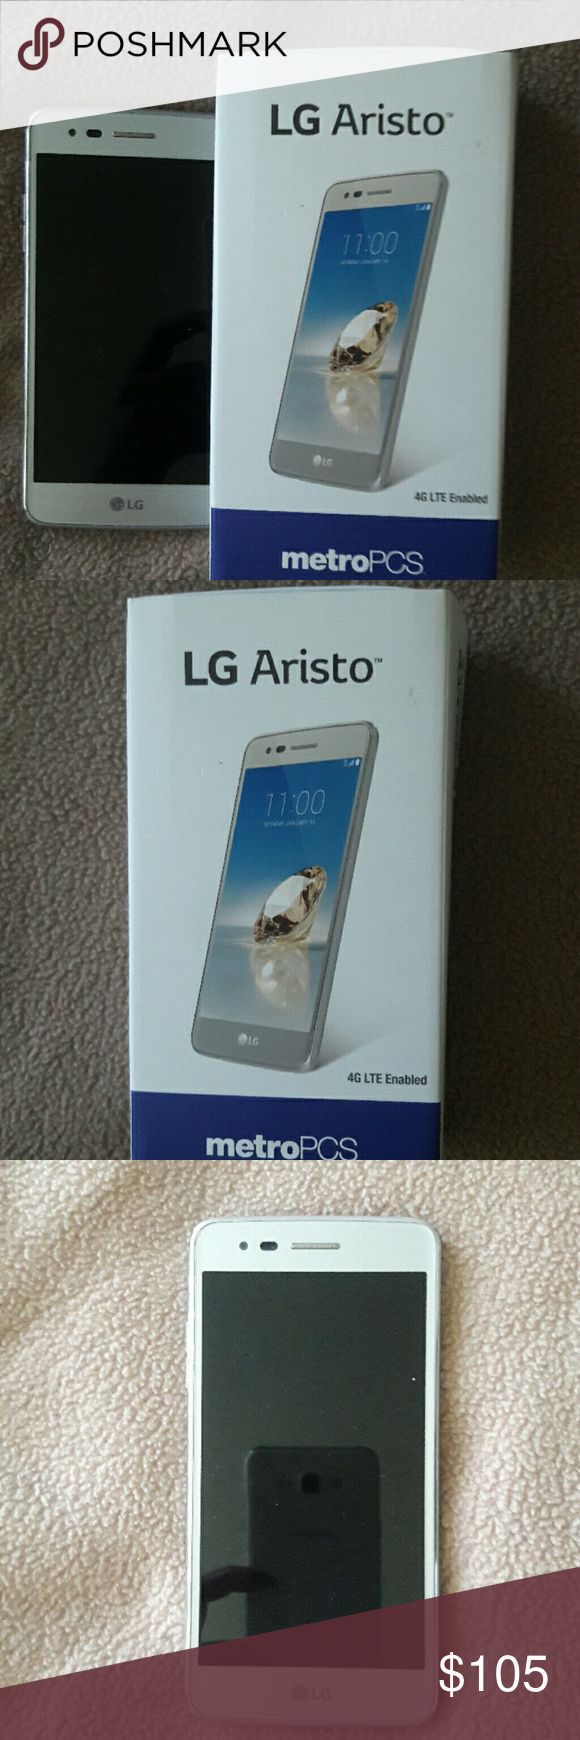 """LG Aristo Cell Phone ??NEW??Metro PCS used for 2 days then I found my old phone .Don't need 2 phones so I'm getting rid of this one. It's a great phone I just love my old 1.  Phone features: 4G LTE Enabled,Android,5.0"""" HE UPS Display with 2.50 Arc Glass,13 NO AutoFocus Camera with LED Flash,5MP Front Facing Camera,16GB ROM*/1,5GB Ram,1.4GHz Quad-Core Processor LG Aristo Accessories"""